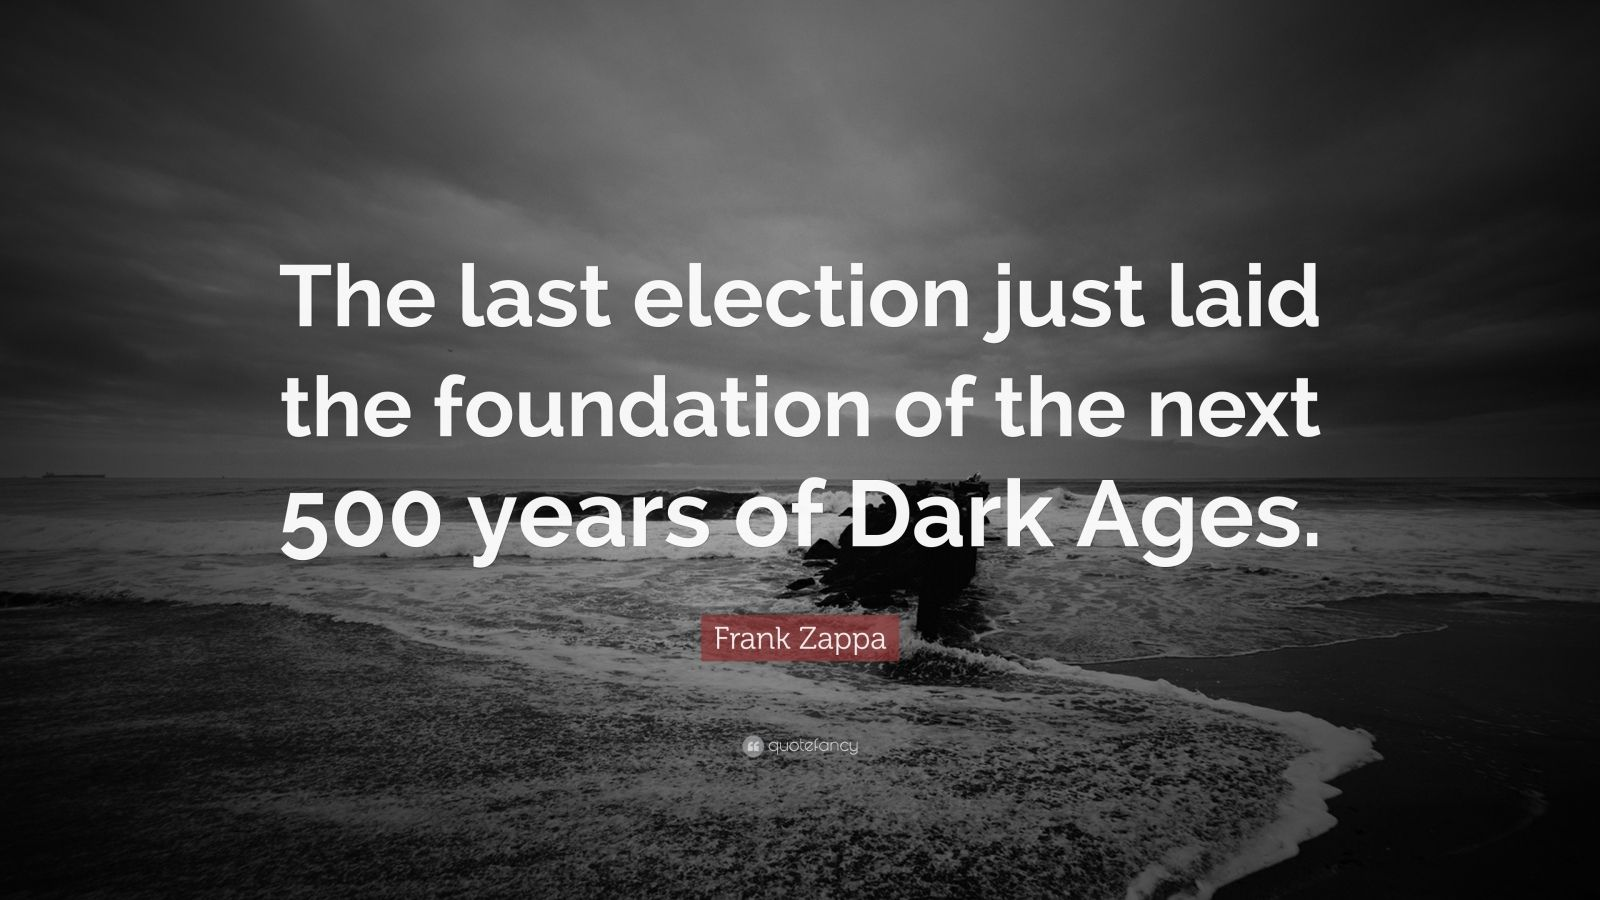 """Frank Zappa Quote: """"The last election just laid the foundation of the next 500 years of Dark Ages."""""""